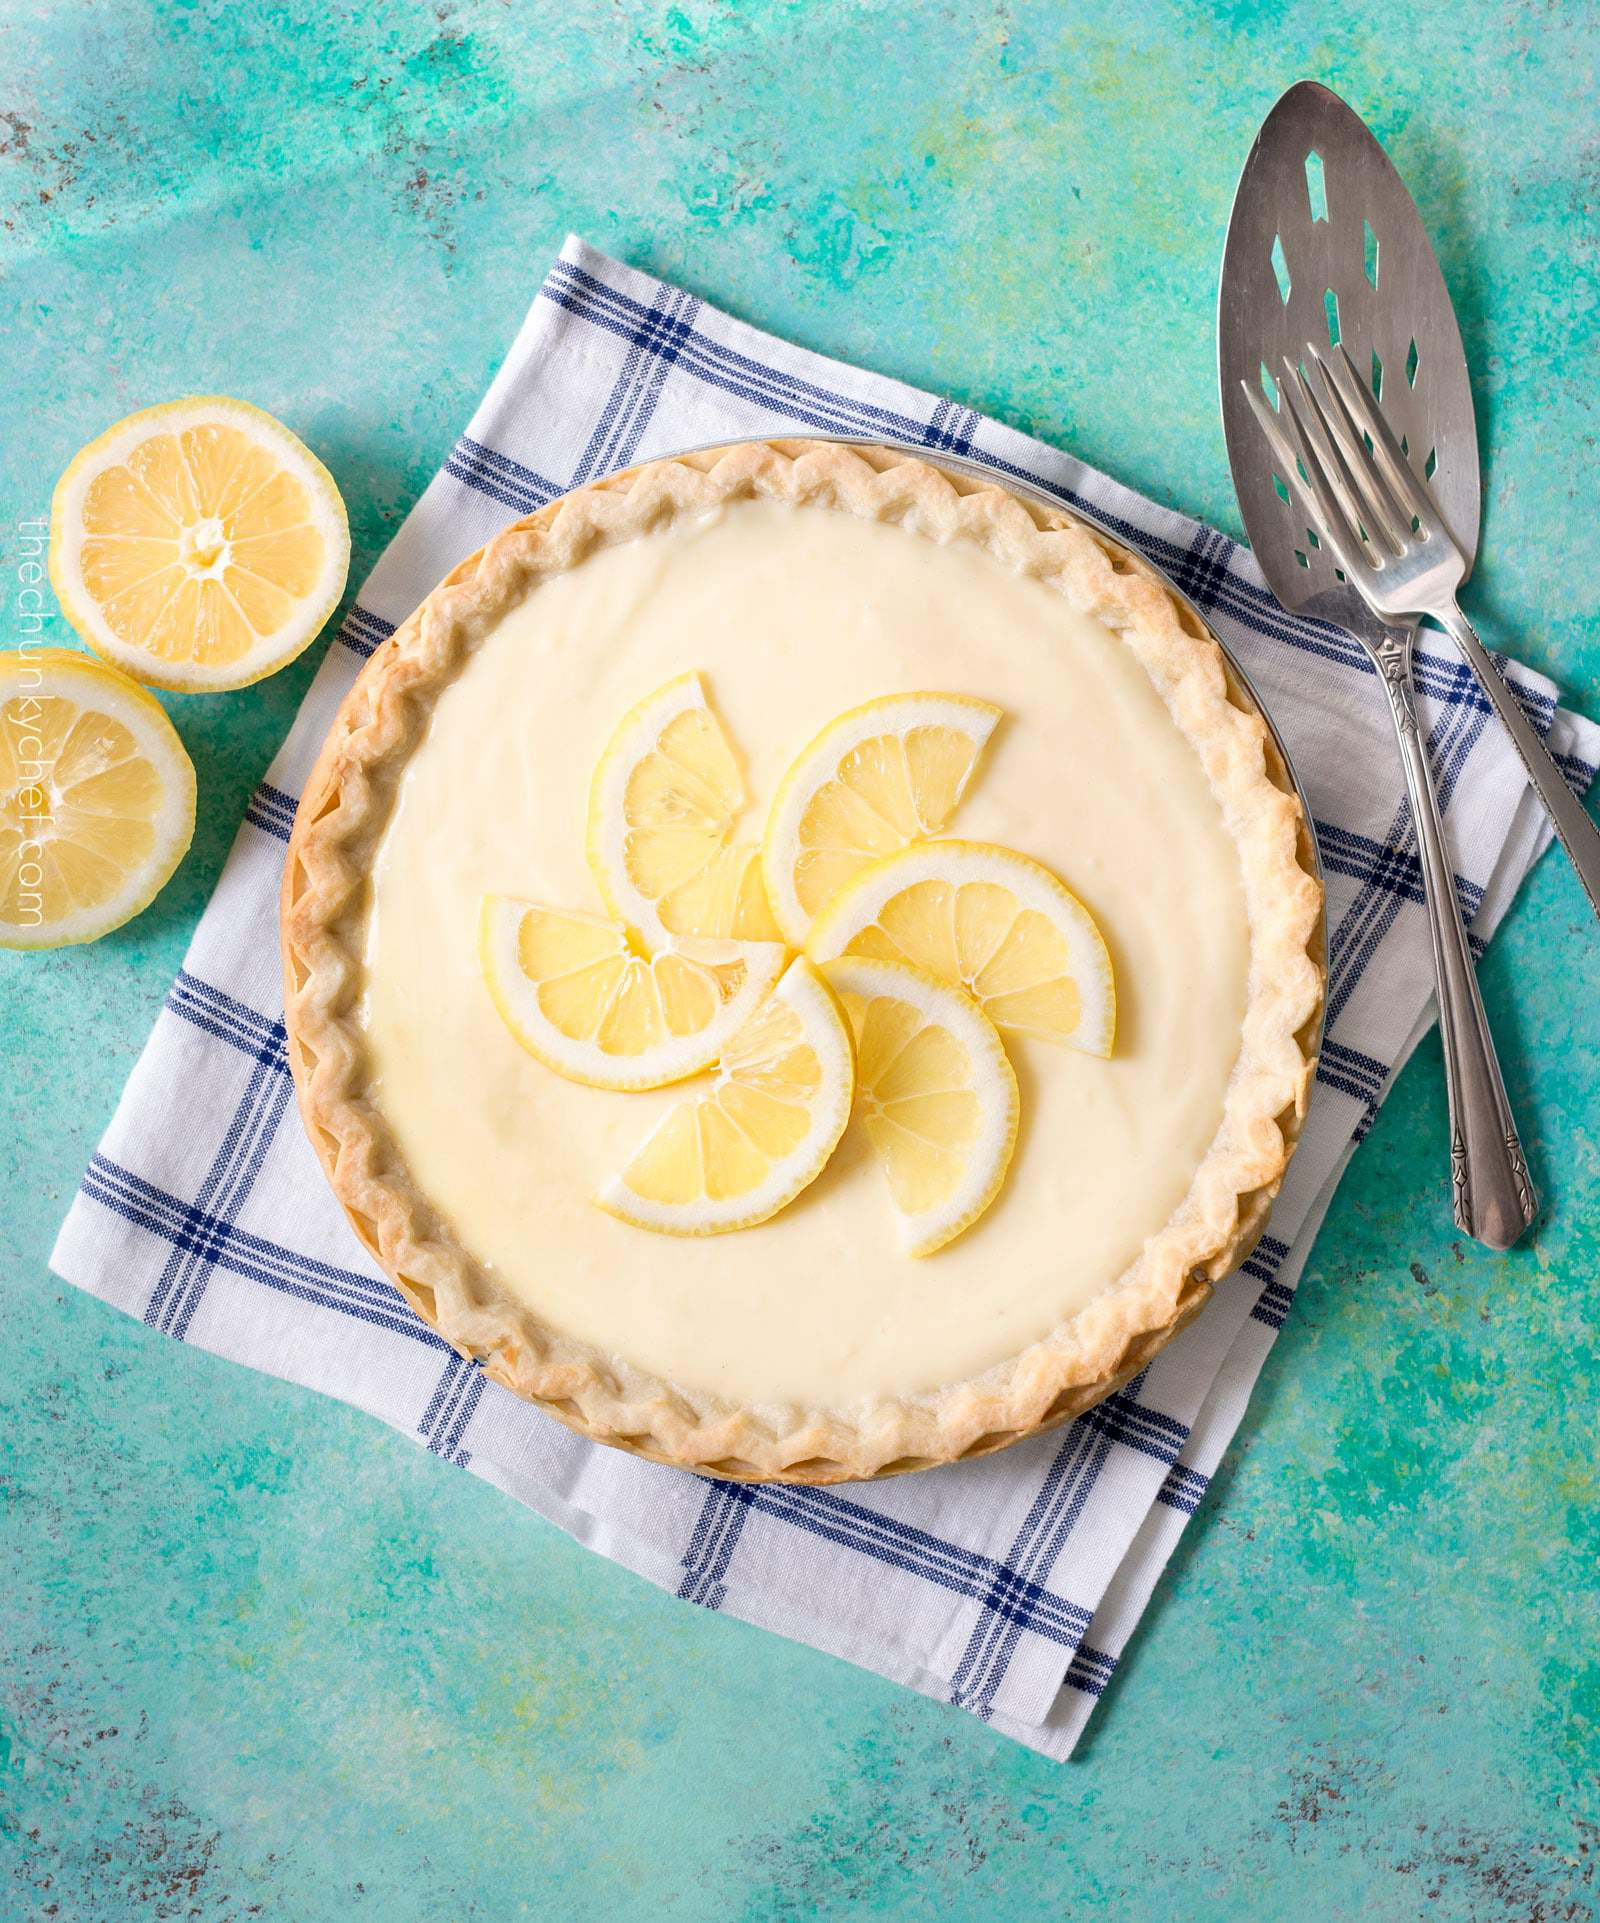 Creamy Sour Cream Lemon Pie